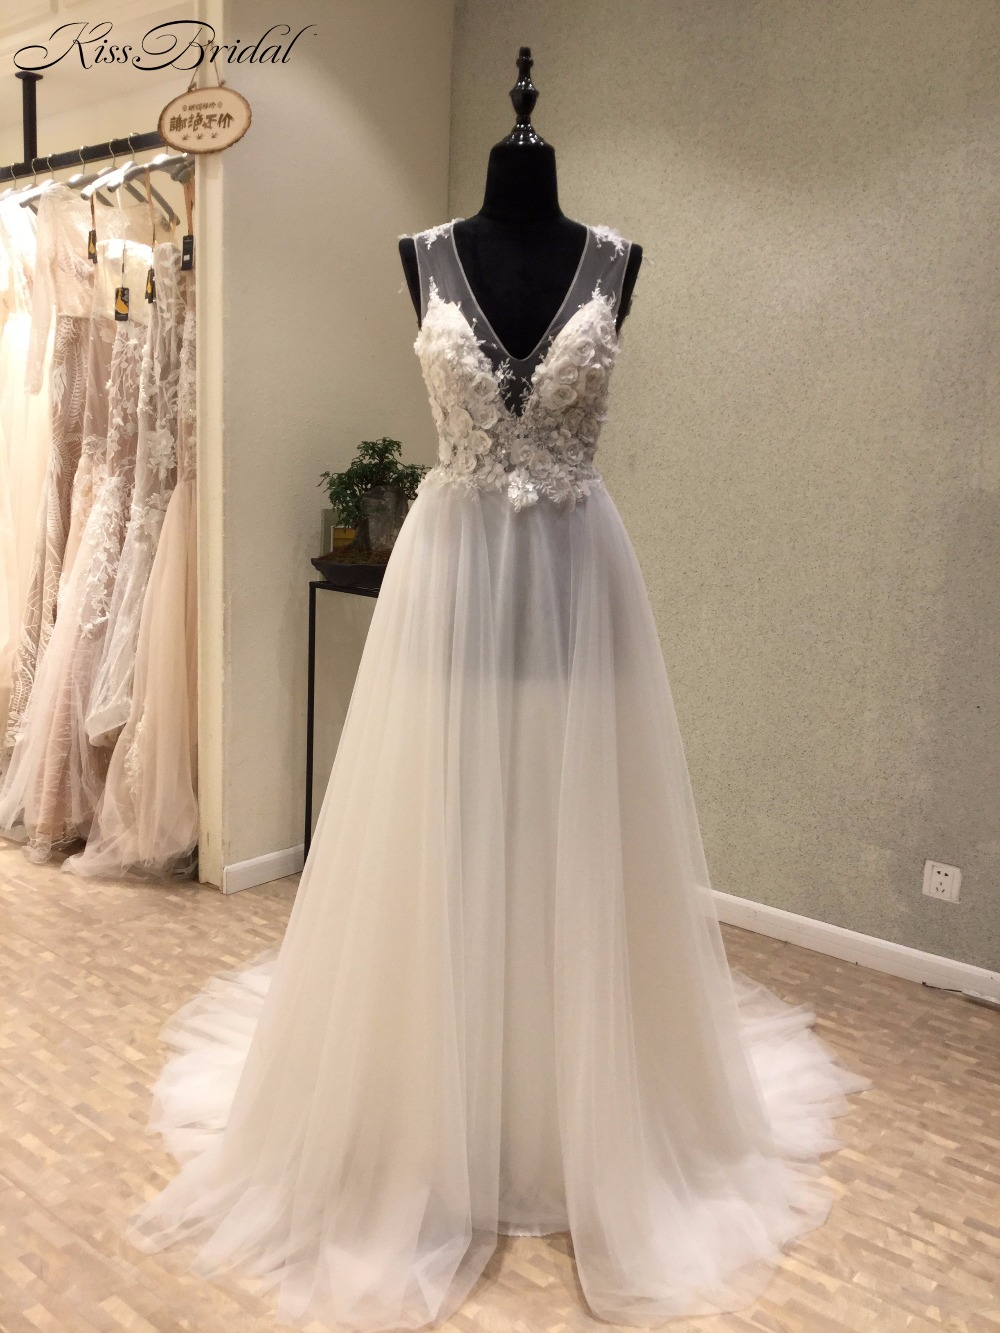 Amazing New Long Wedding Dress 2018 Spaghetti Strap Lace Up Back A-Line Appliques Tulle Wedding Gowns Vestido longo